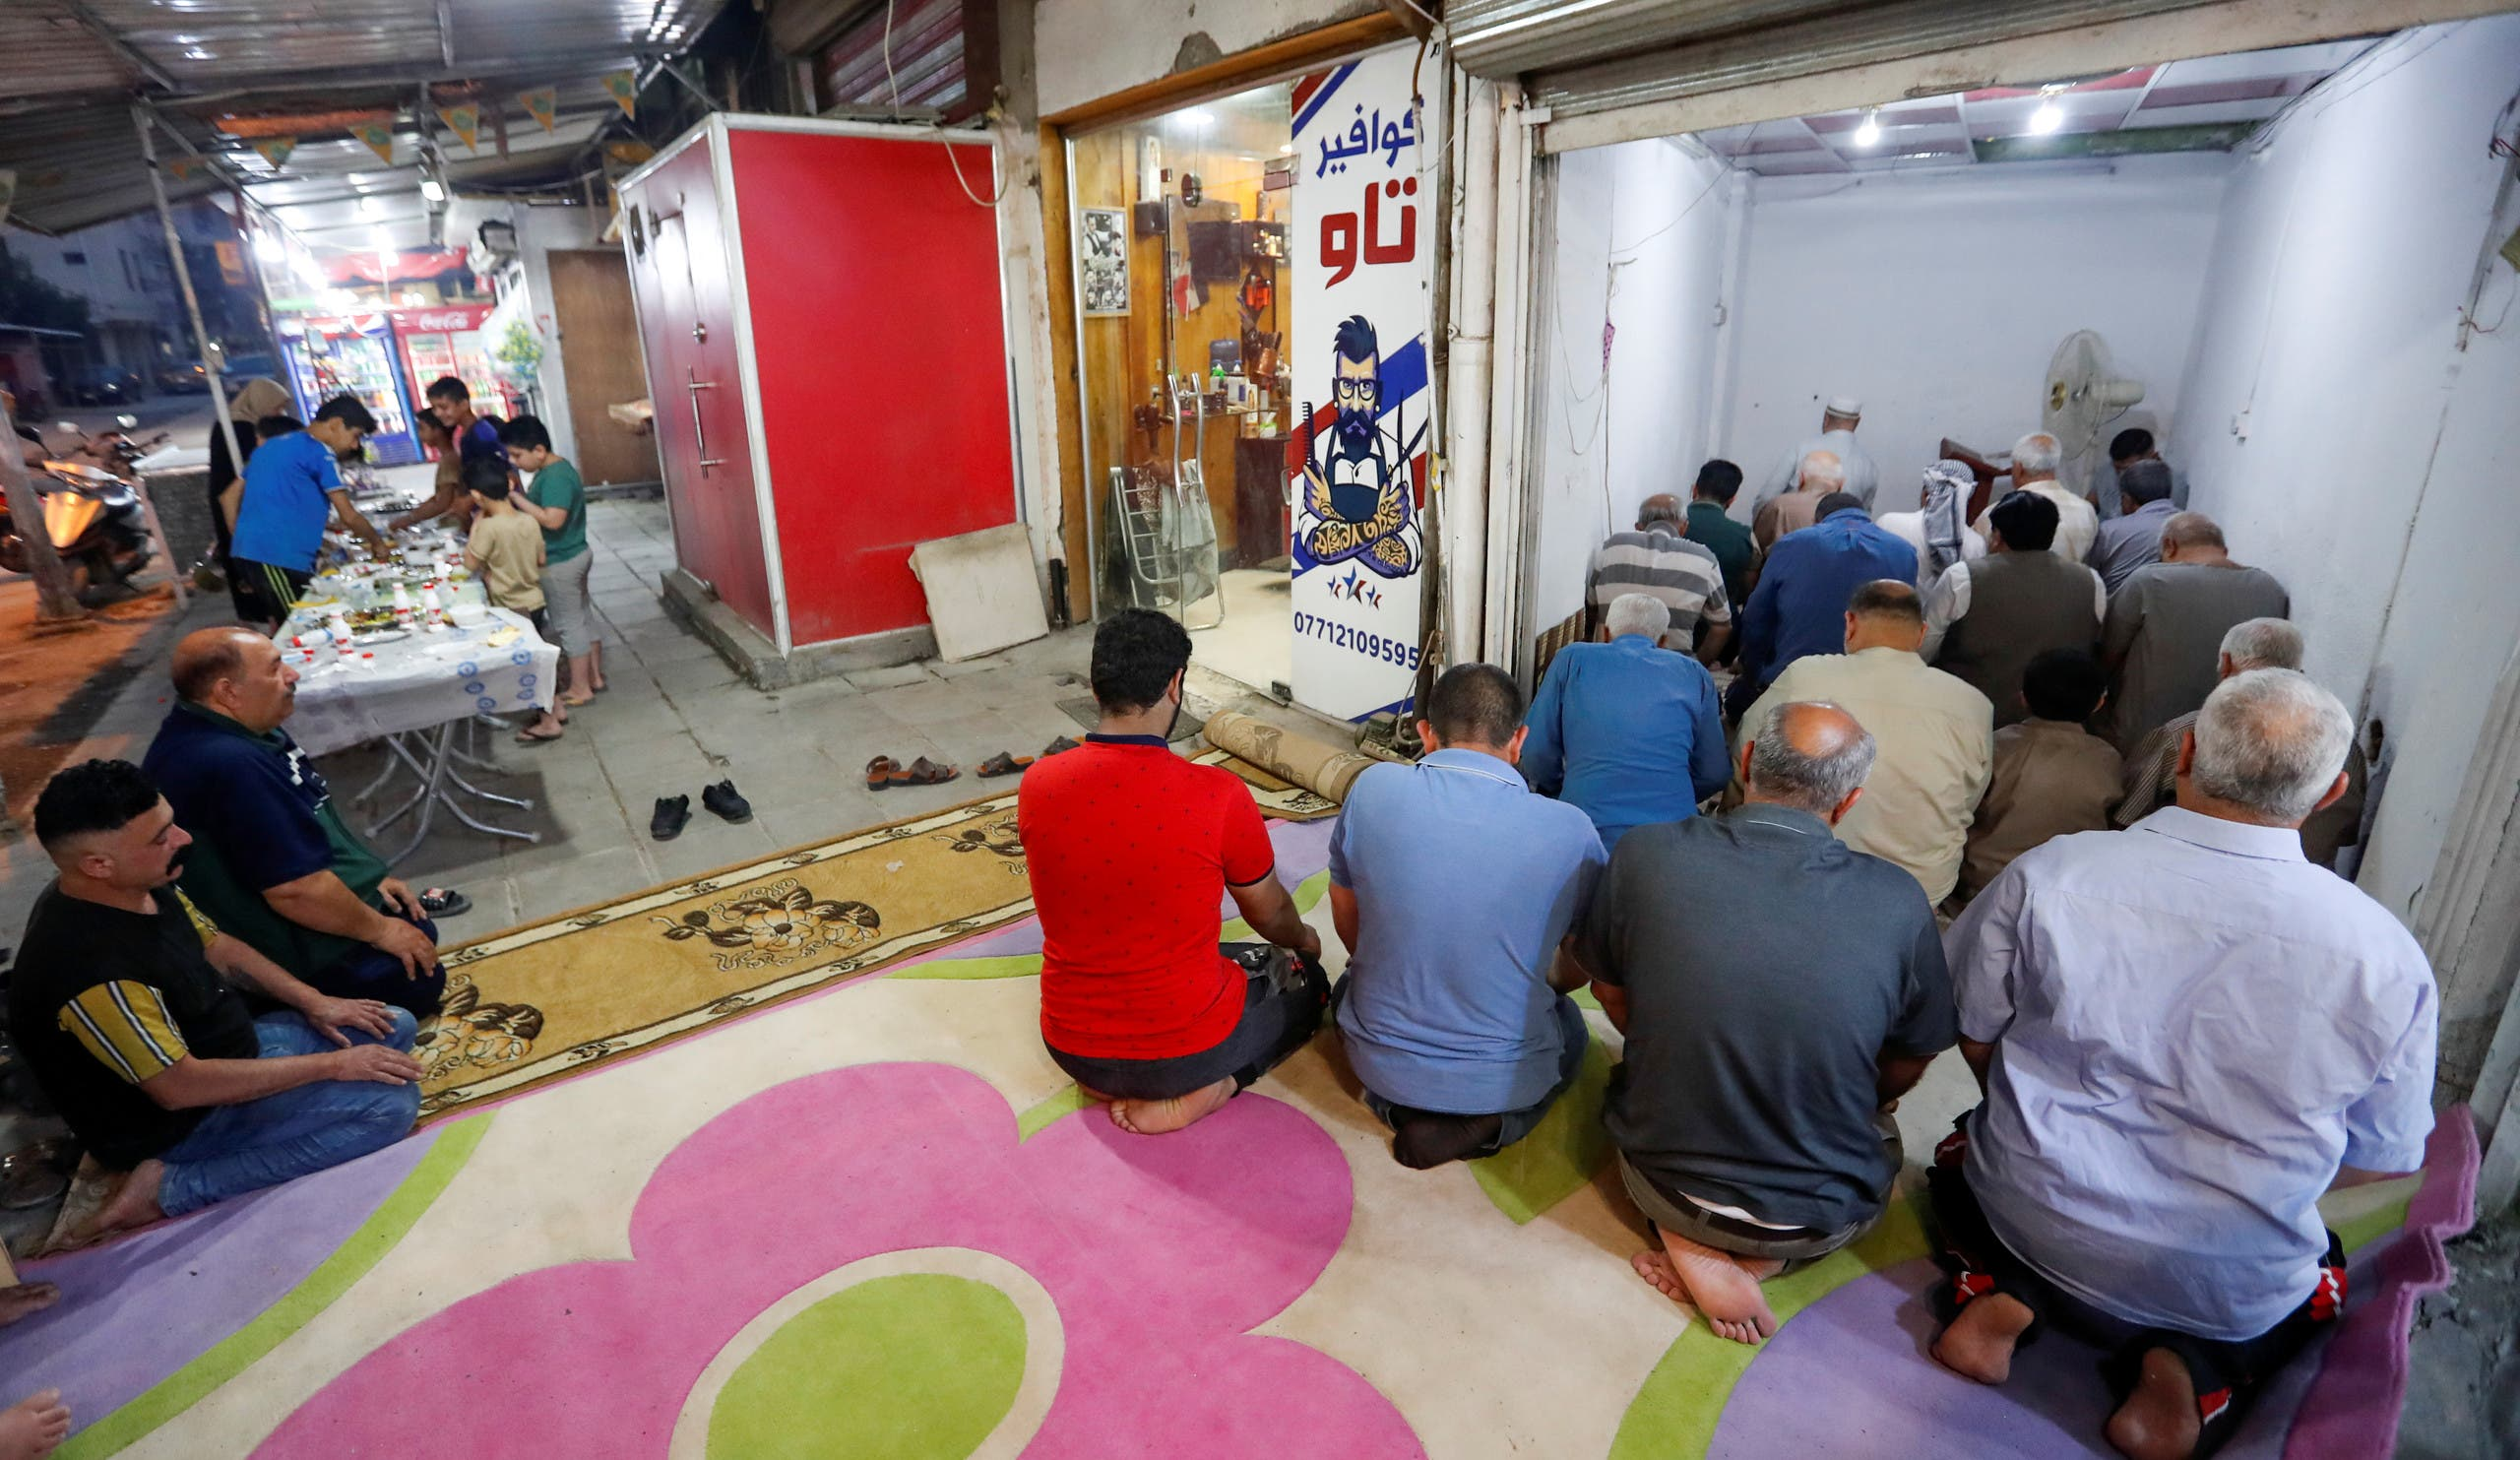 Iraqi muslims perform Ramadan prayers at a store, after the Iraqi government ordered all mosques to stay closed, during the holy fasting month of Ramadan, in Baghdad's Adhamiya district. (Reuters)